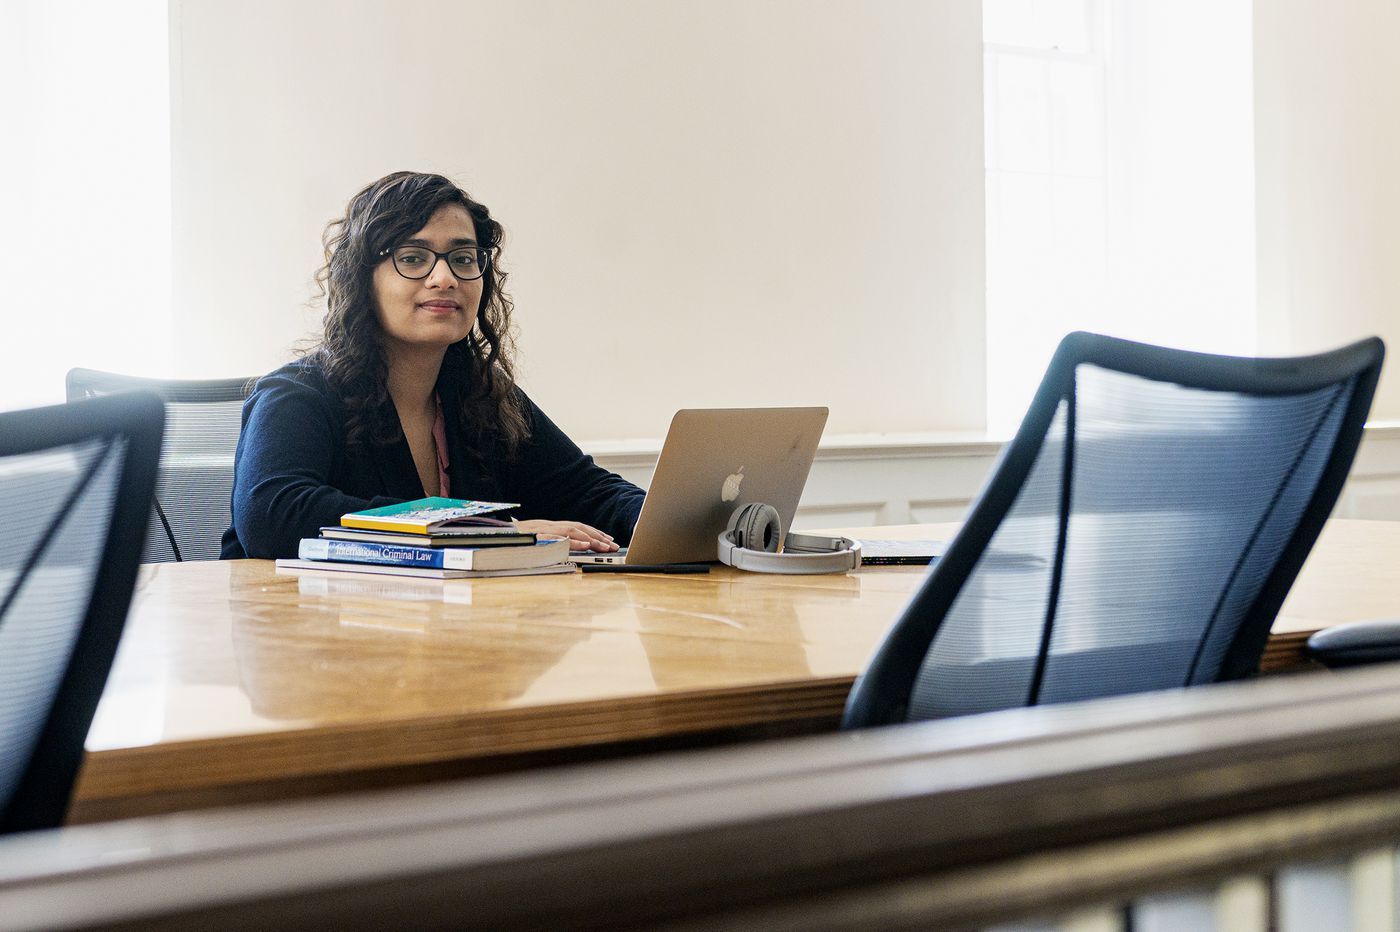 Haverford College Made Seamless Transition to Virtual Final Exams Thanks to Trust Environment Created By School's Honor Code